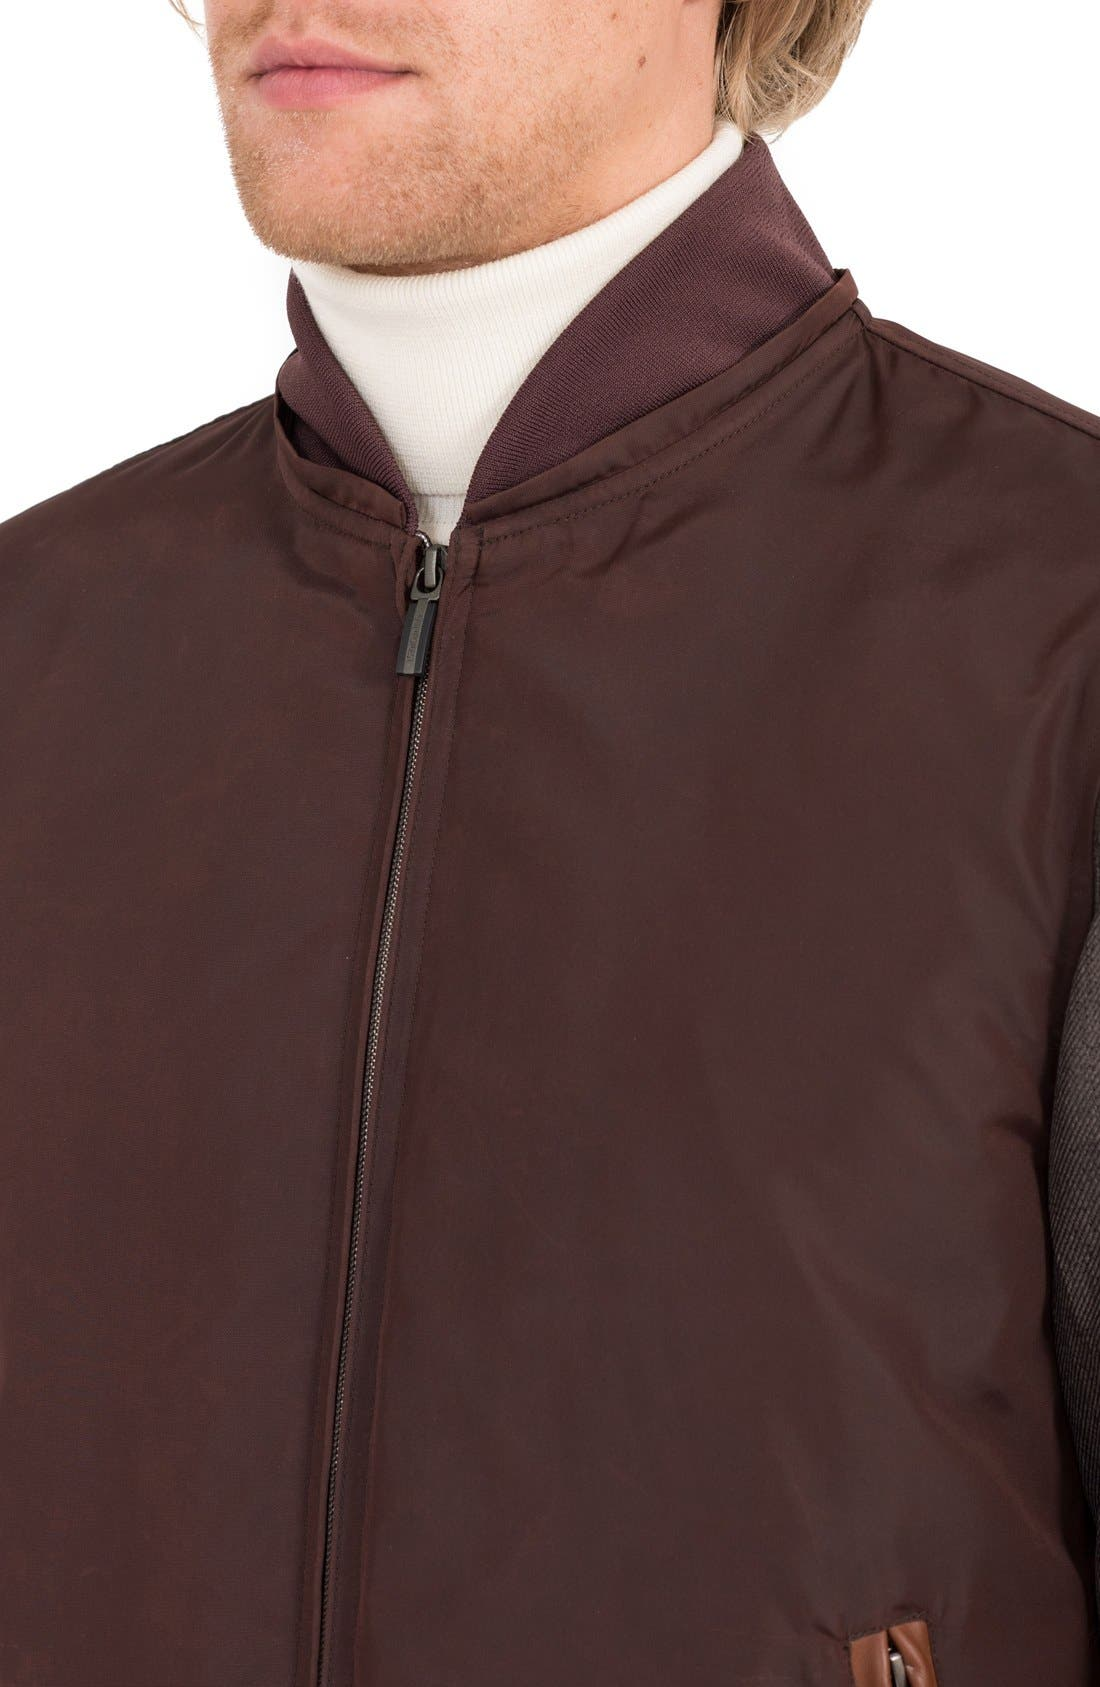 Waxed Nylon Jacket with Faux Shearling Collar,                             Alternate thumbnail 4, color,                             Burgundy/ Acorn